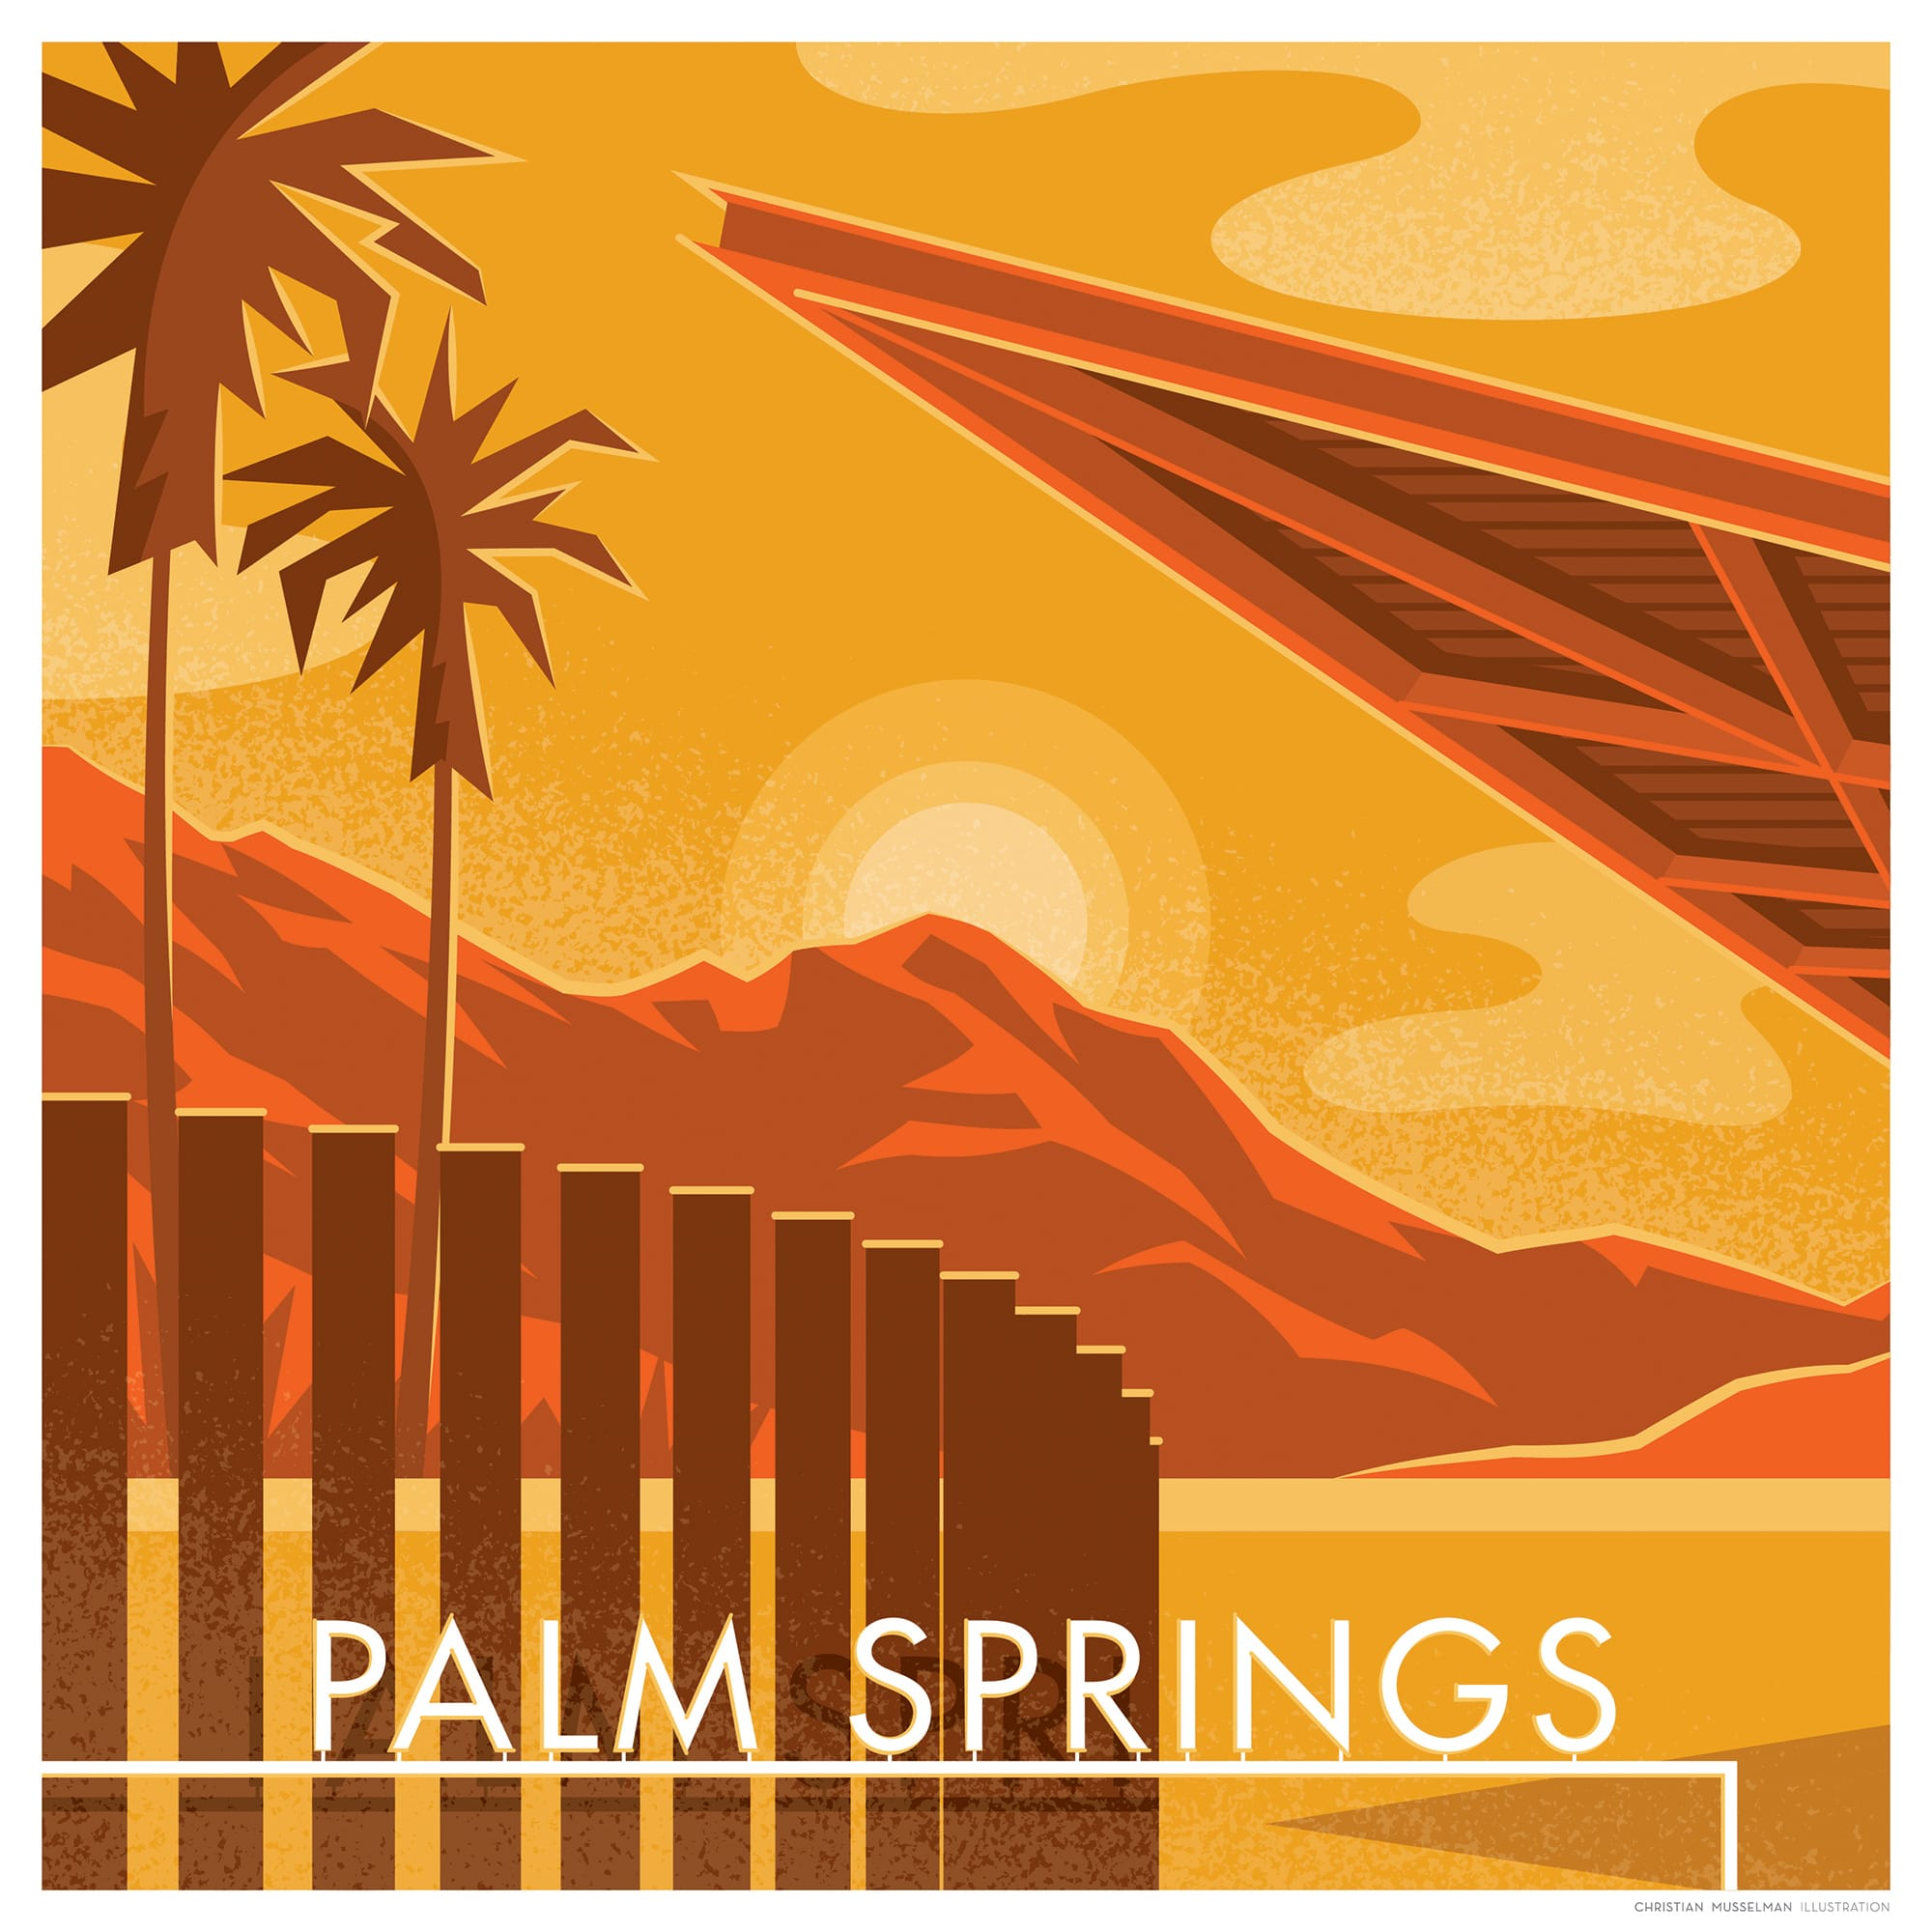 revolving chair thames masters folding chairs artist christian musselma shows his affection for palm springs